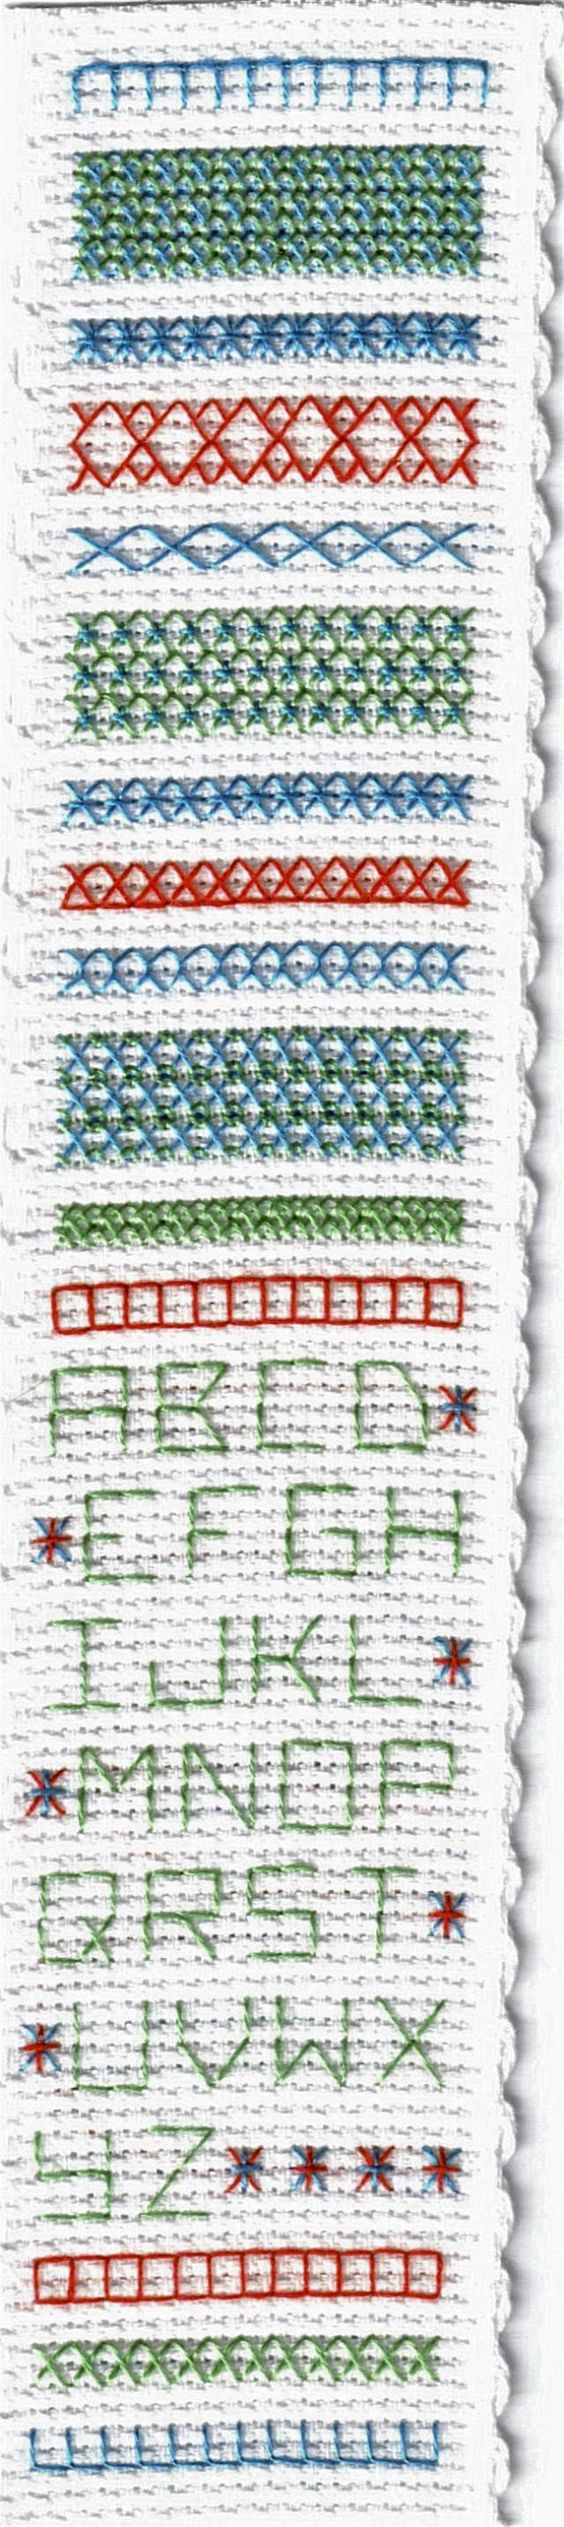 Cross Stitch Unique Bookmarks with These Free Printable Charts: Band Sampler Bookmark